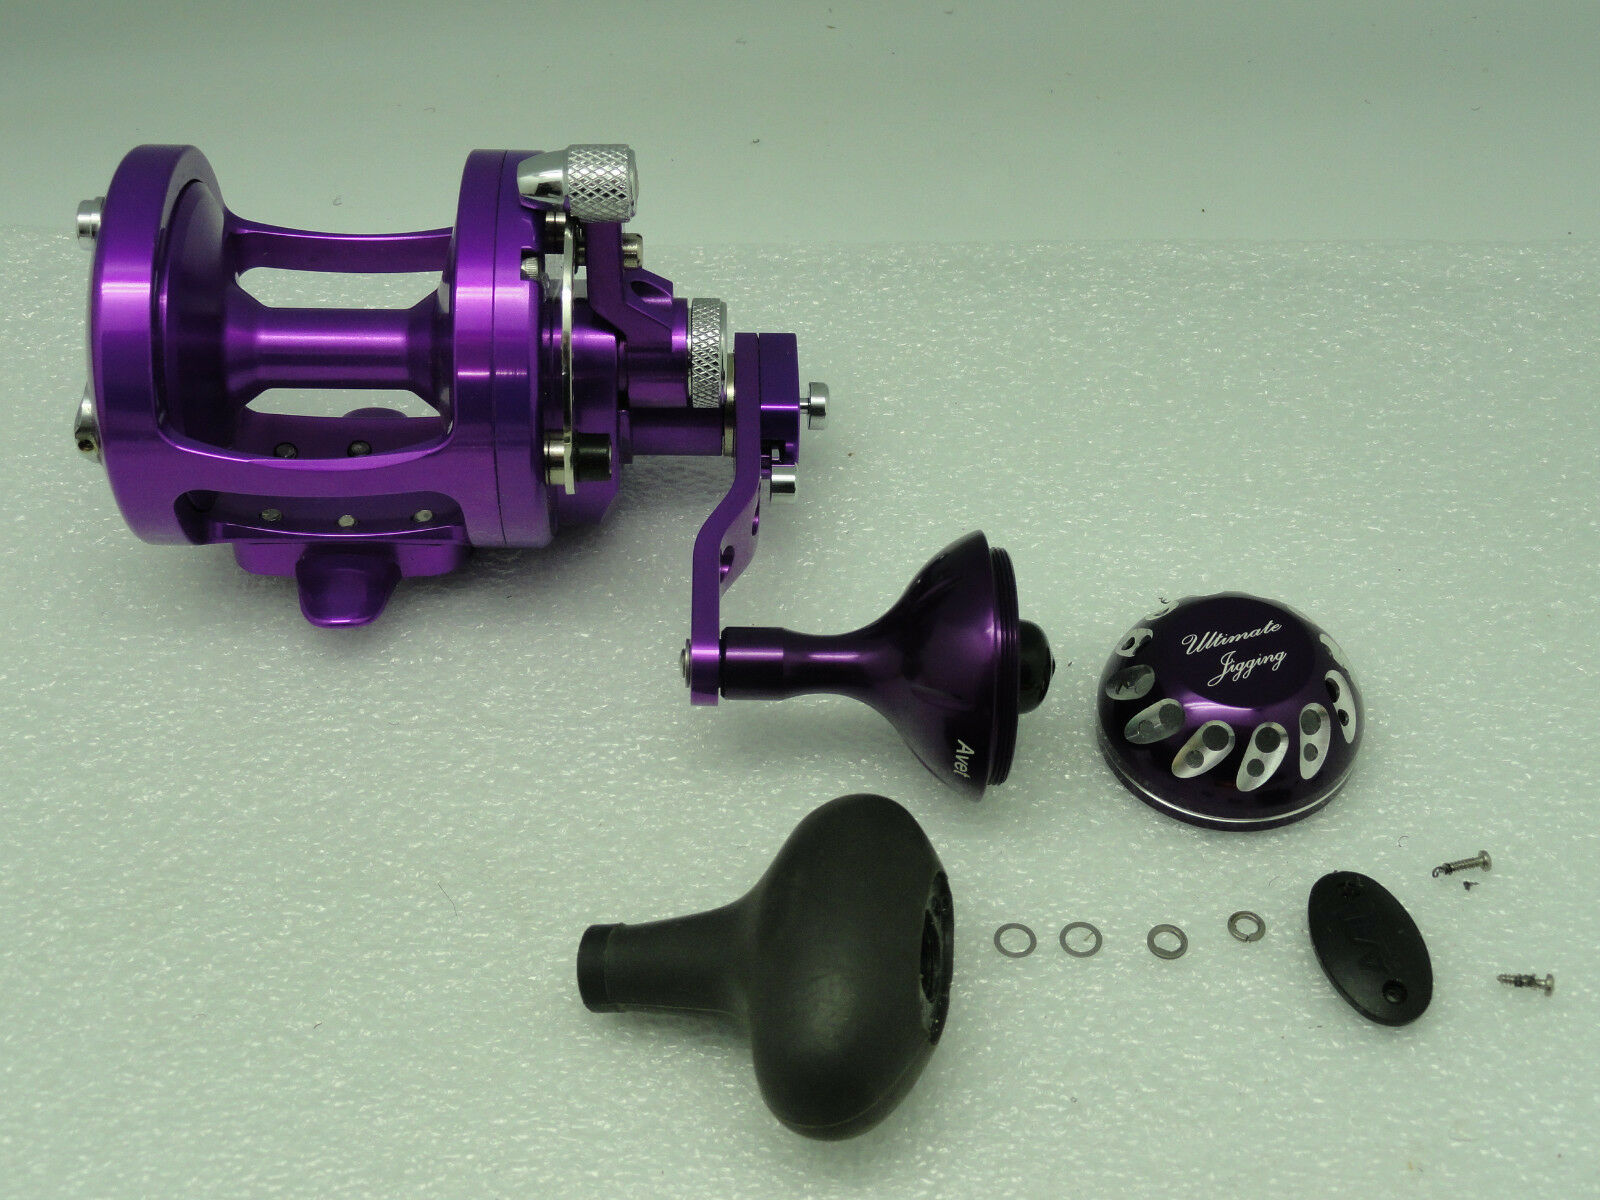 U.J PRK45A direct fit Avet SX MX LX JX LX MX HX MC Raptor ONE TWO SPD reel PUR/SV/SV dad81a